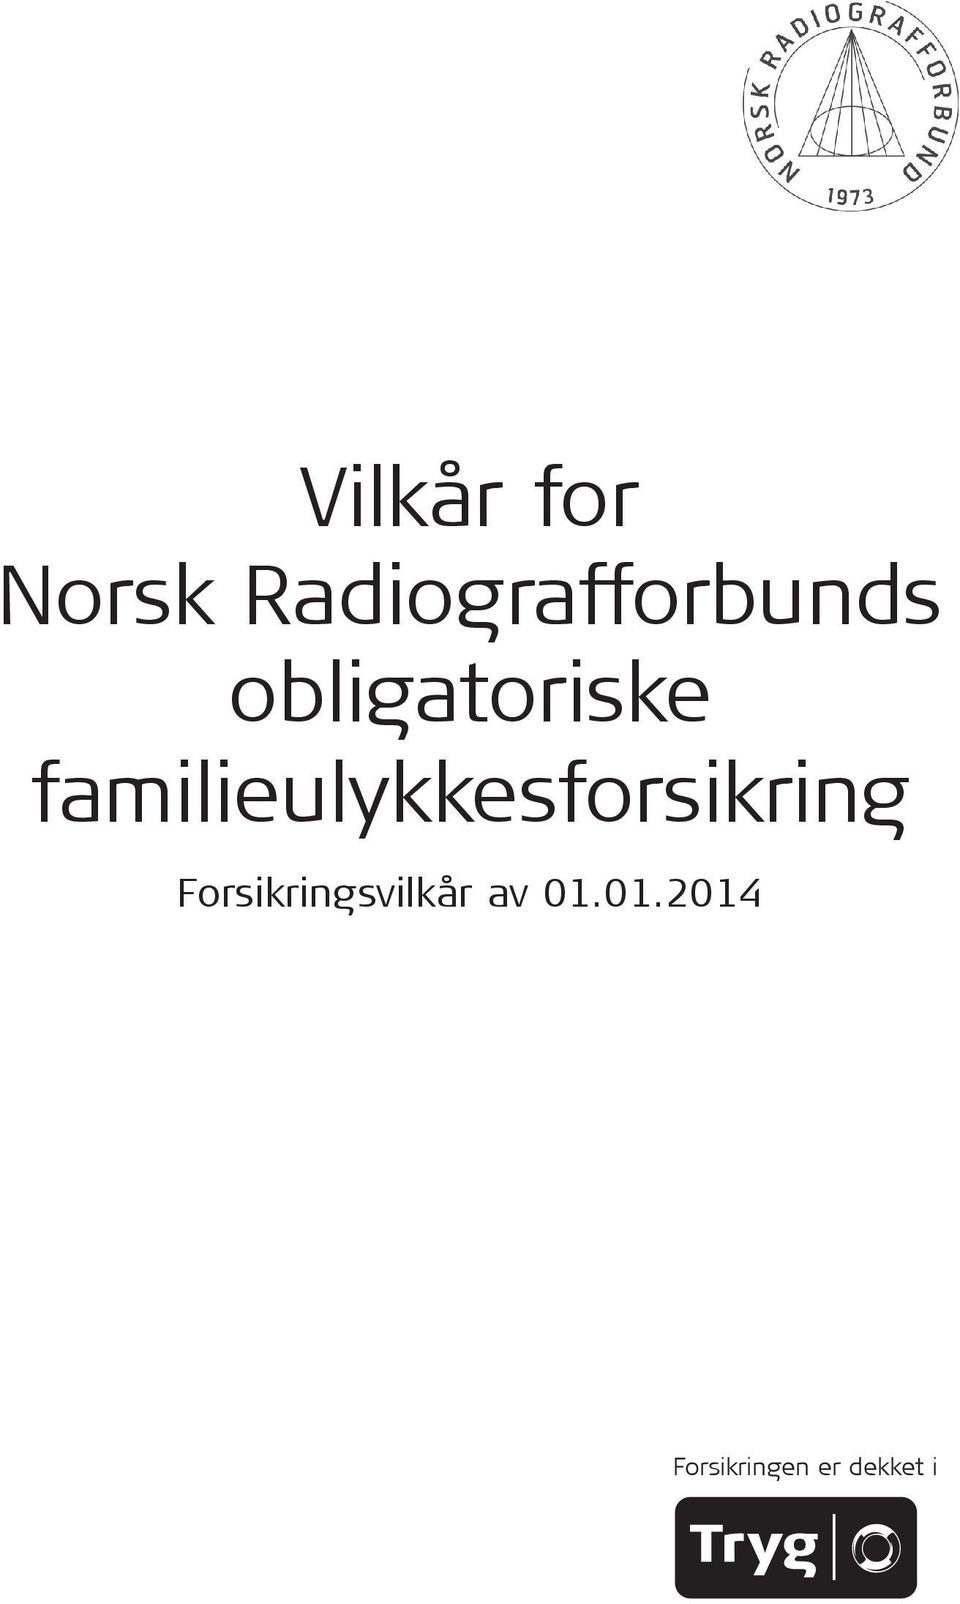 familieulykkesforsikring For sik